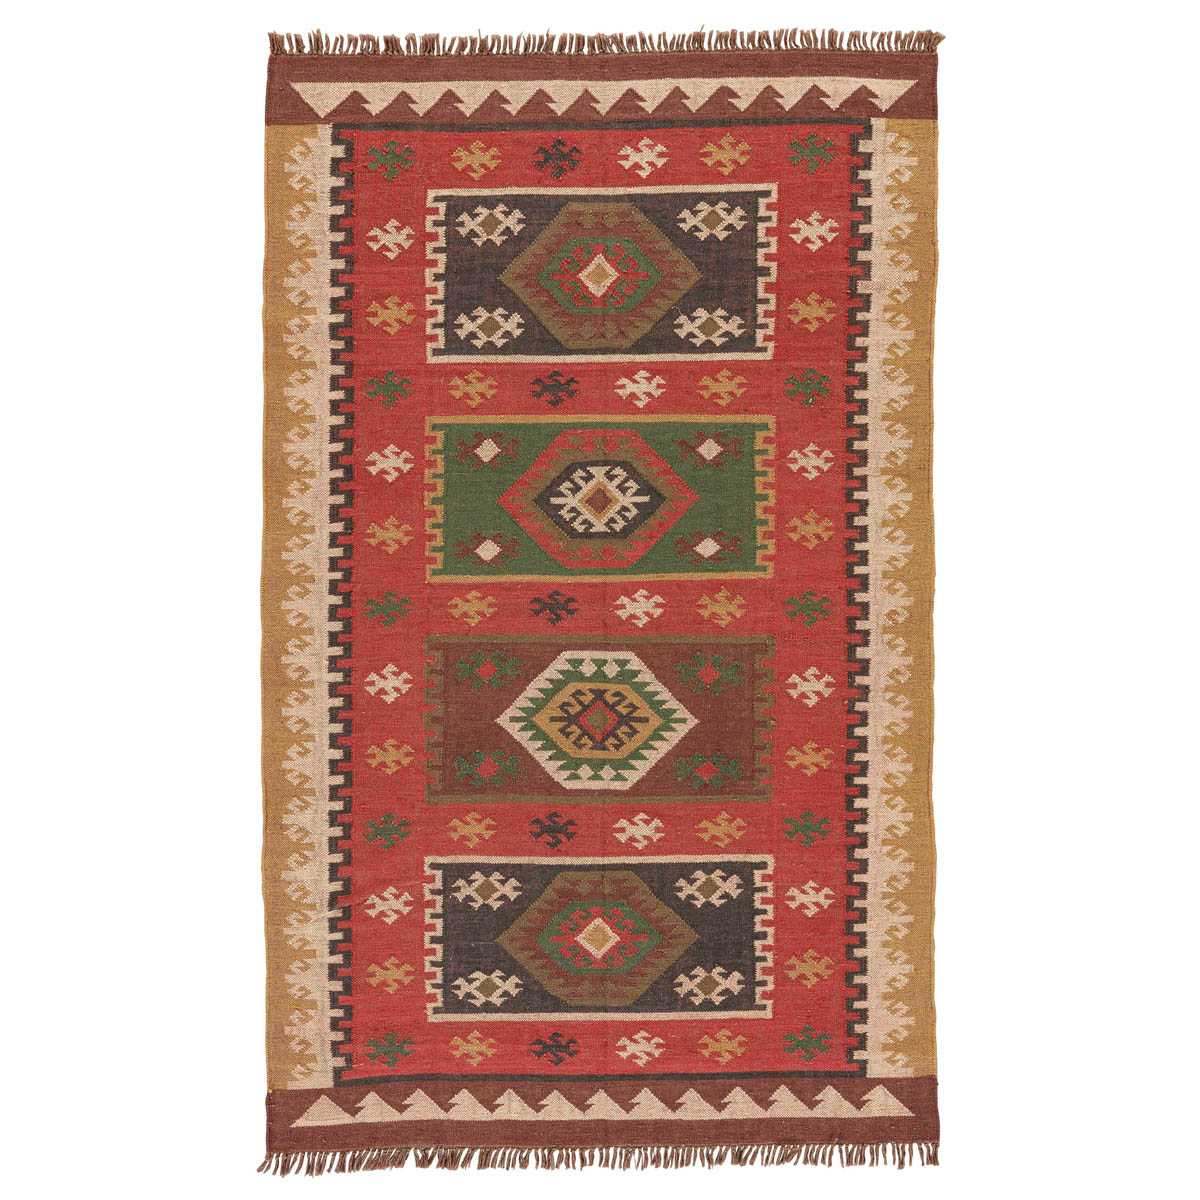 Southwest Harvest Rug - 5 x 8